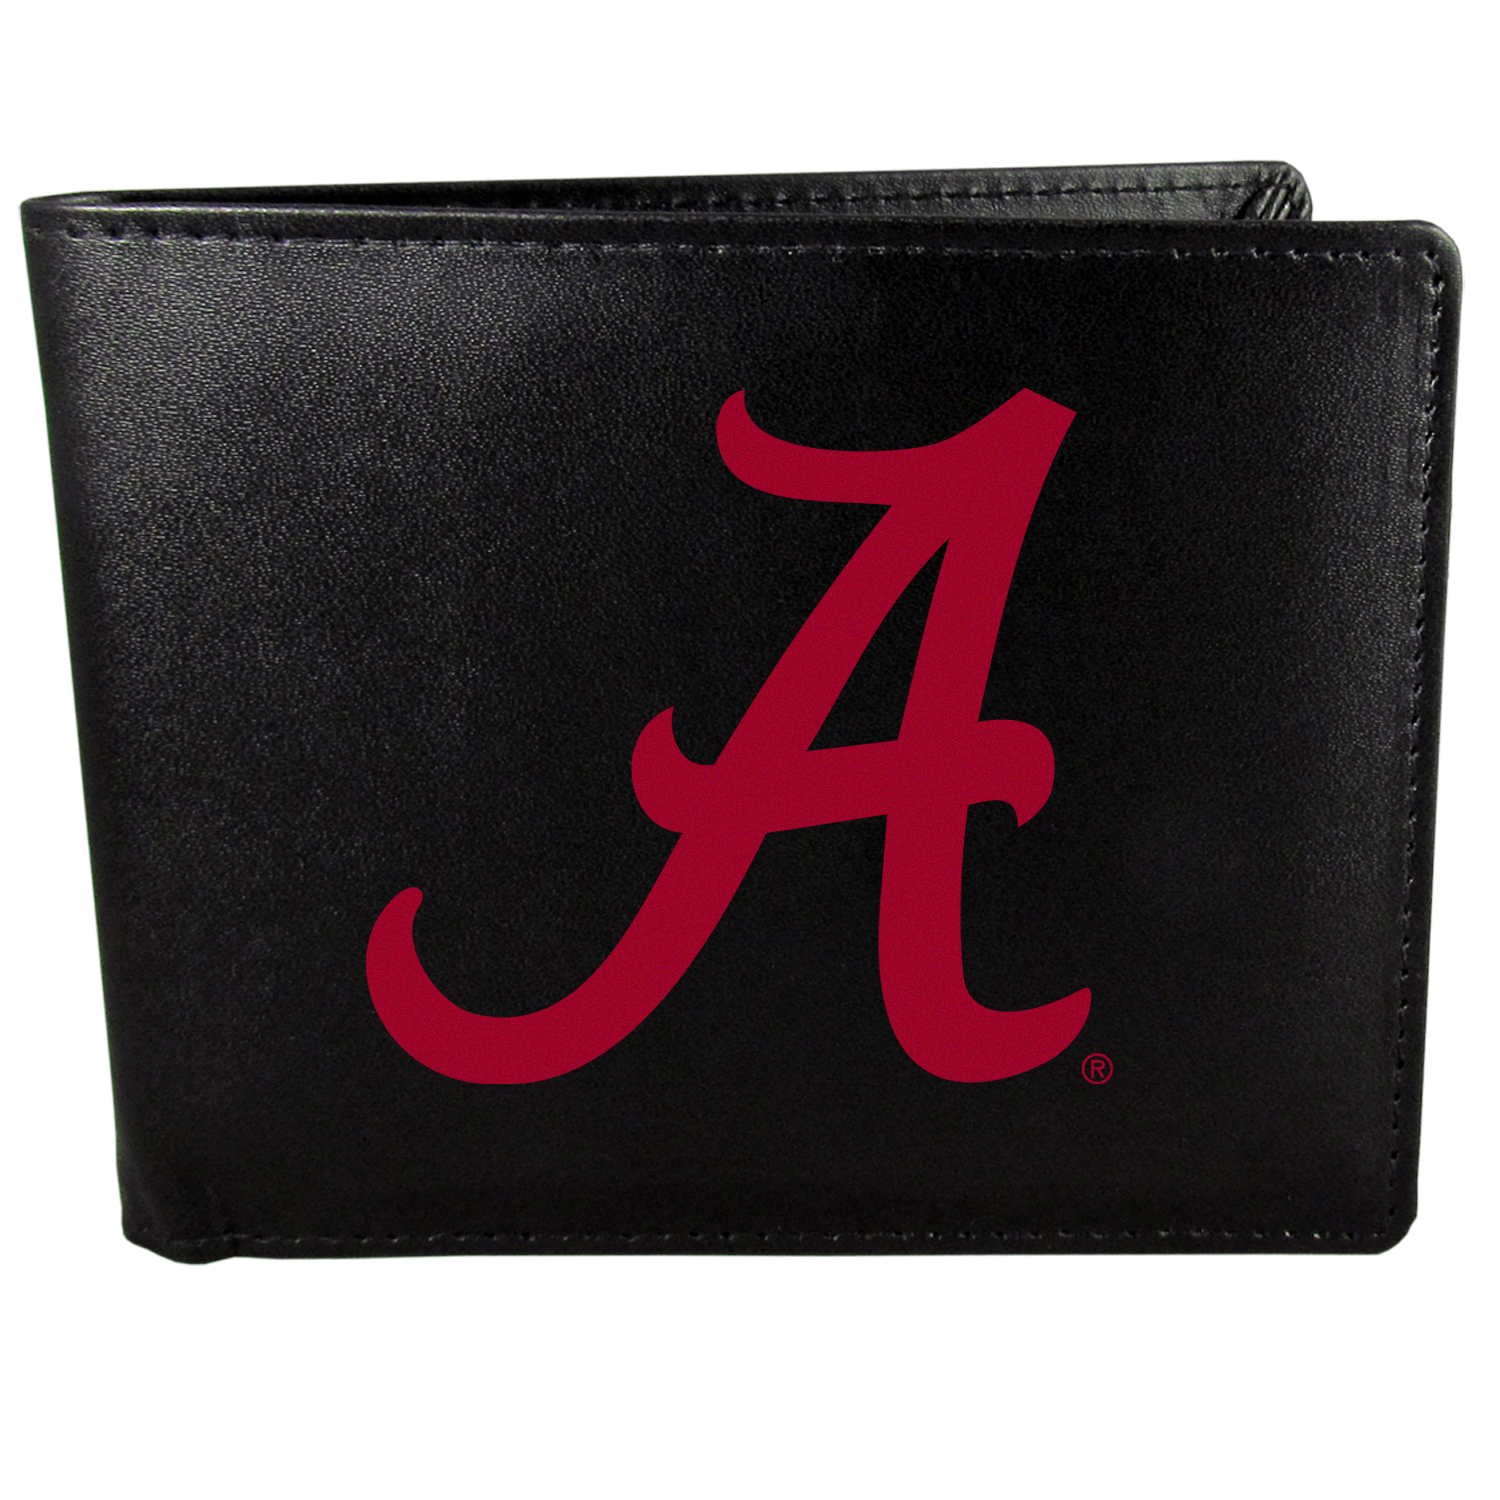 Alabama Crimson Tide Bi-fold Wallet Large Logo - Sports fans do not have to sacrifice style with this classic bi-fold wallet that sports the Alabama Crimson Tide?extra large logo. This men's fashion accessory has a leather grain look and expert craftmanship for a quality wallet at a great price. The wallet features inner credit card slots, windowed ID slot and a large billfold pocket. The front of the wallet features a printed team logo.